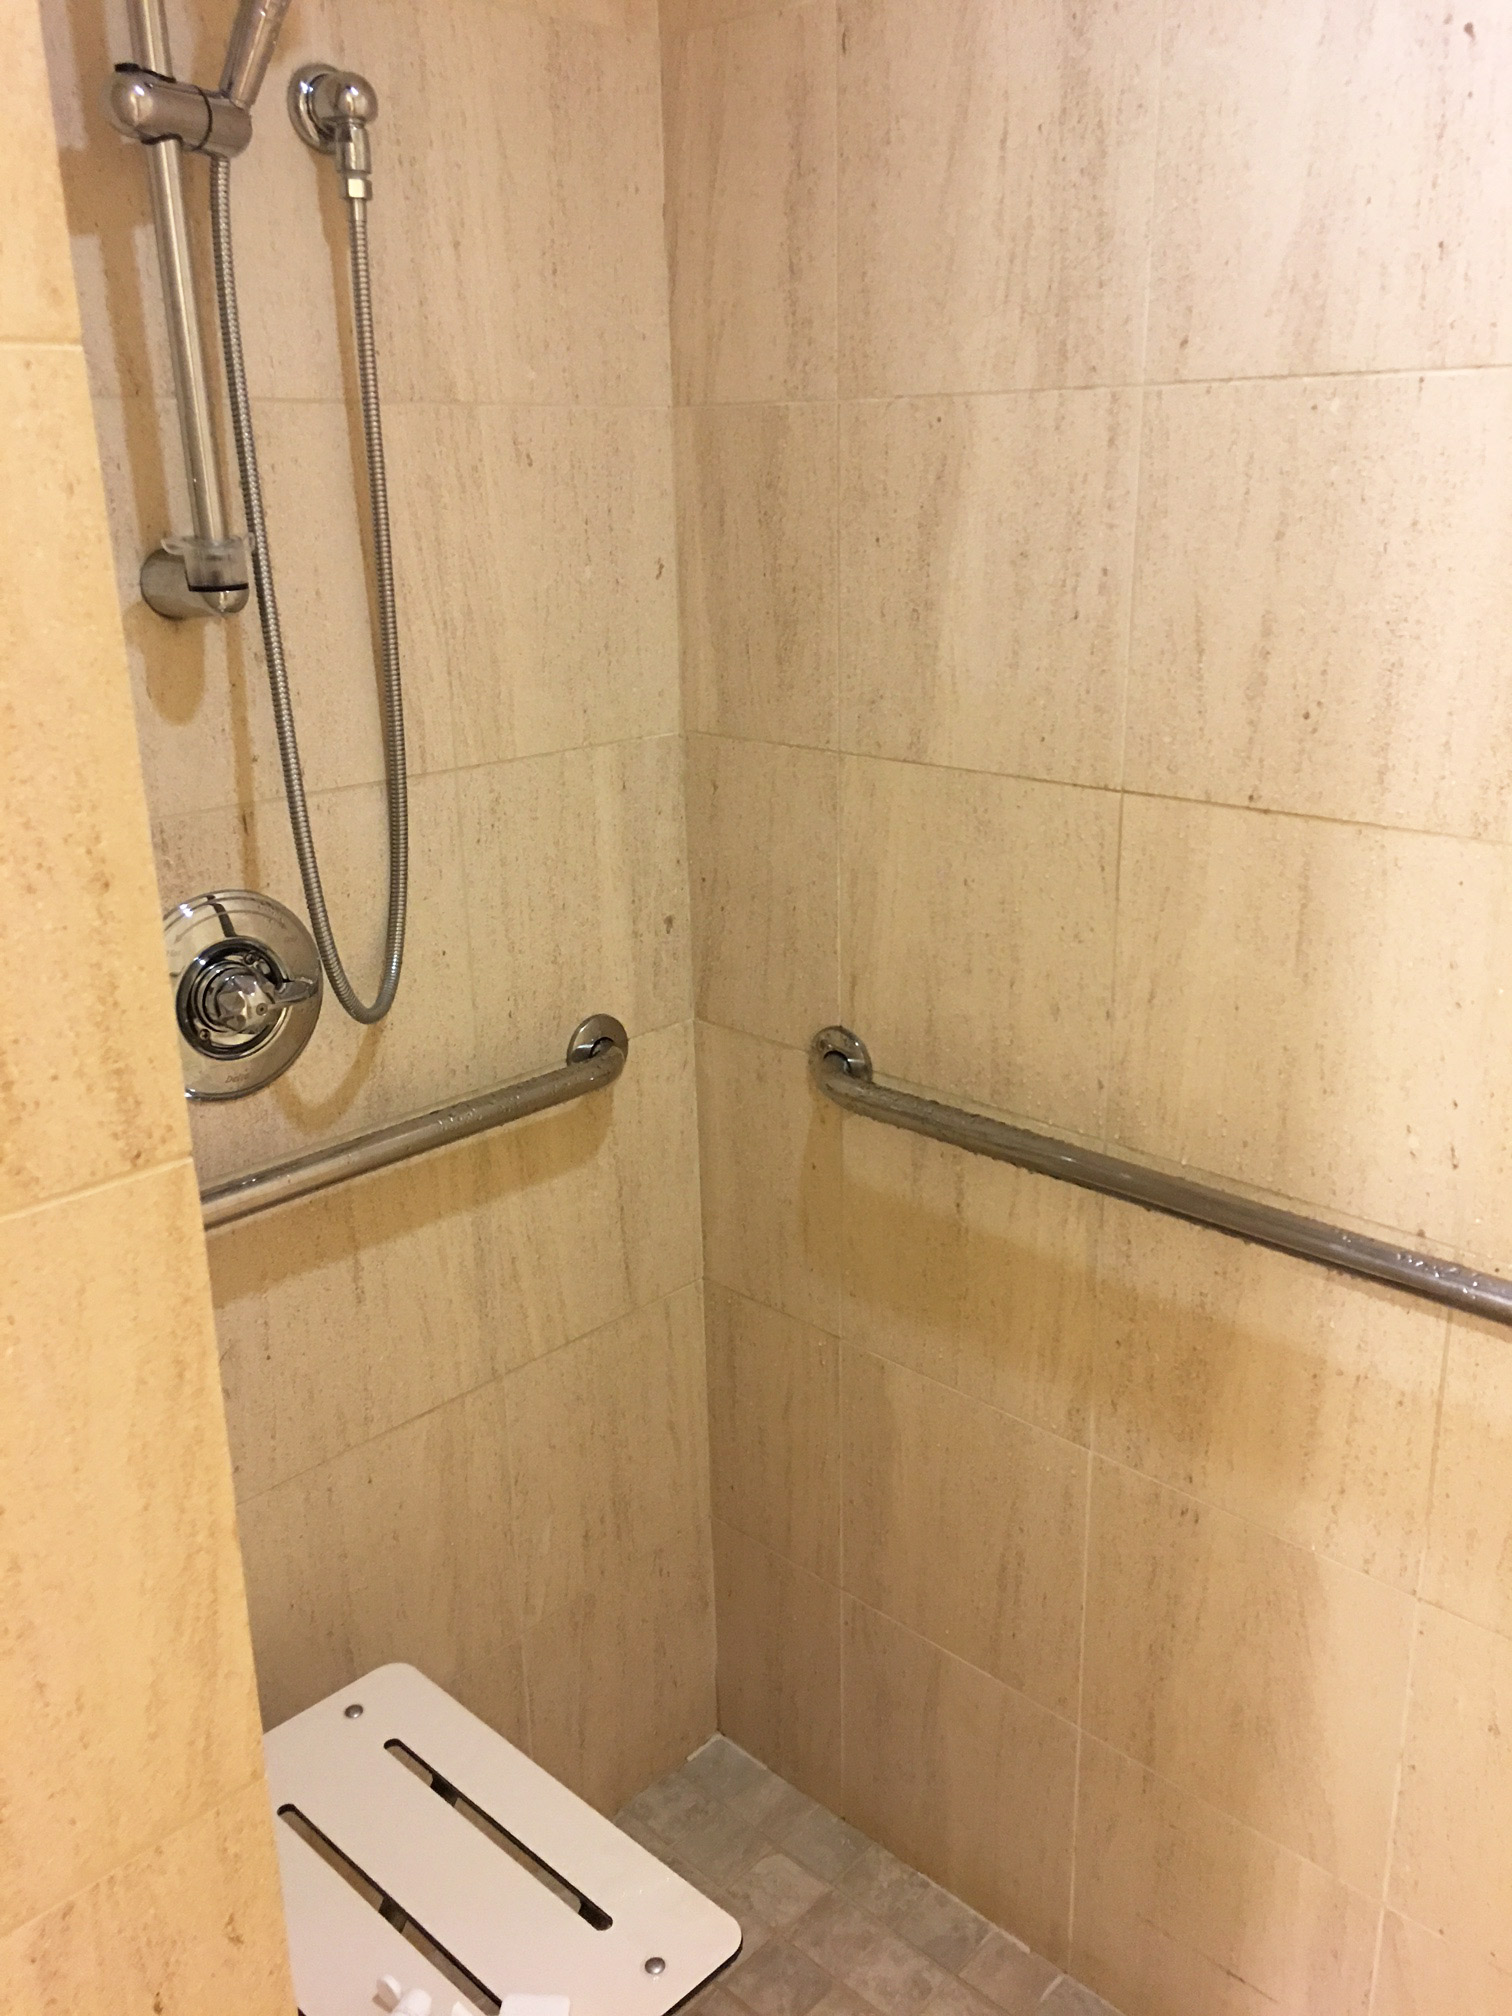 ada standards i find having a seat in a bathtub does meet the whether the person can actually use it or not and rollin showers